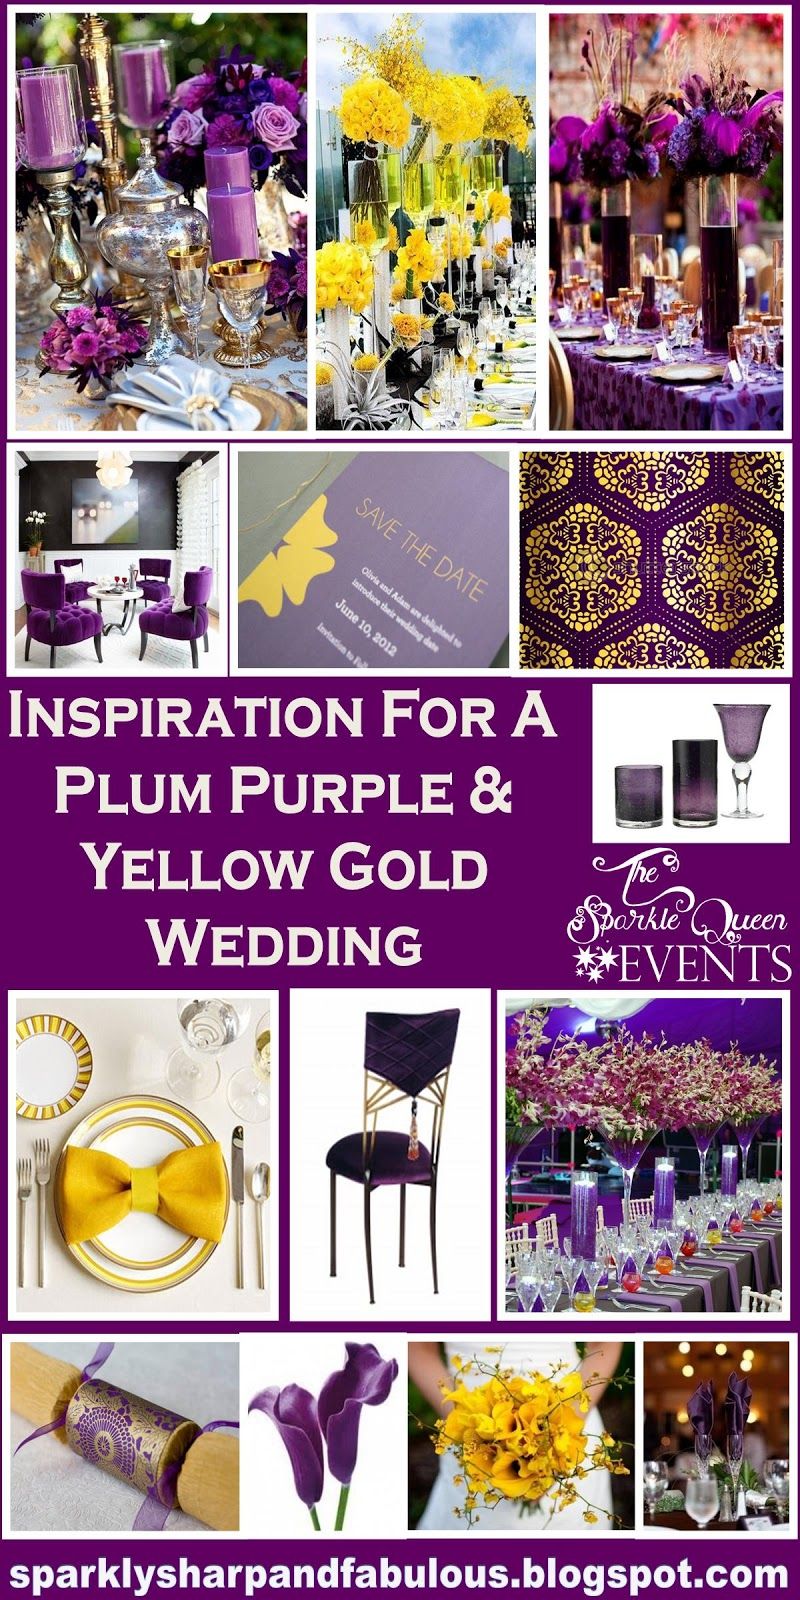 Wedding Extravaganza | Inspiration For A Plum Purple And Yellow Gold Wedding Extravaganza